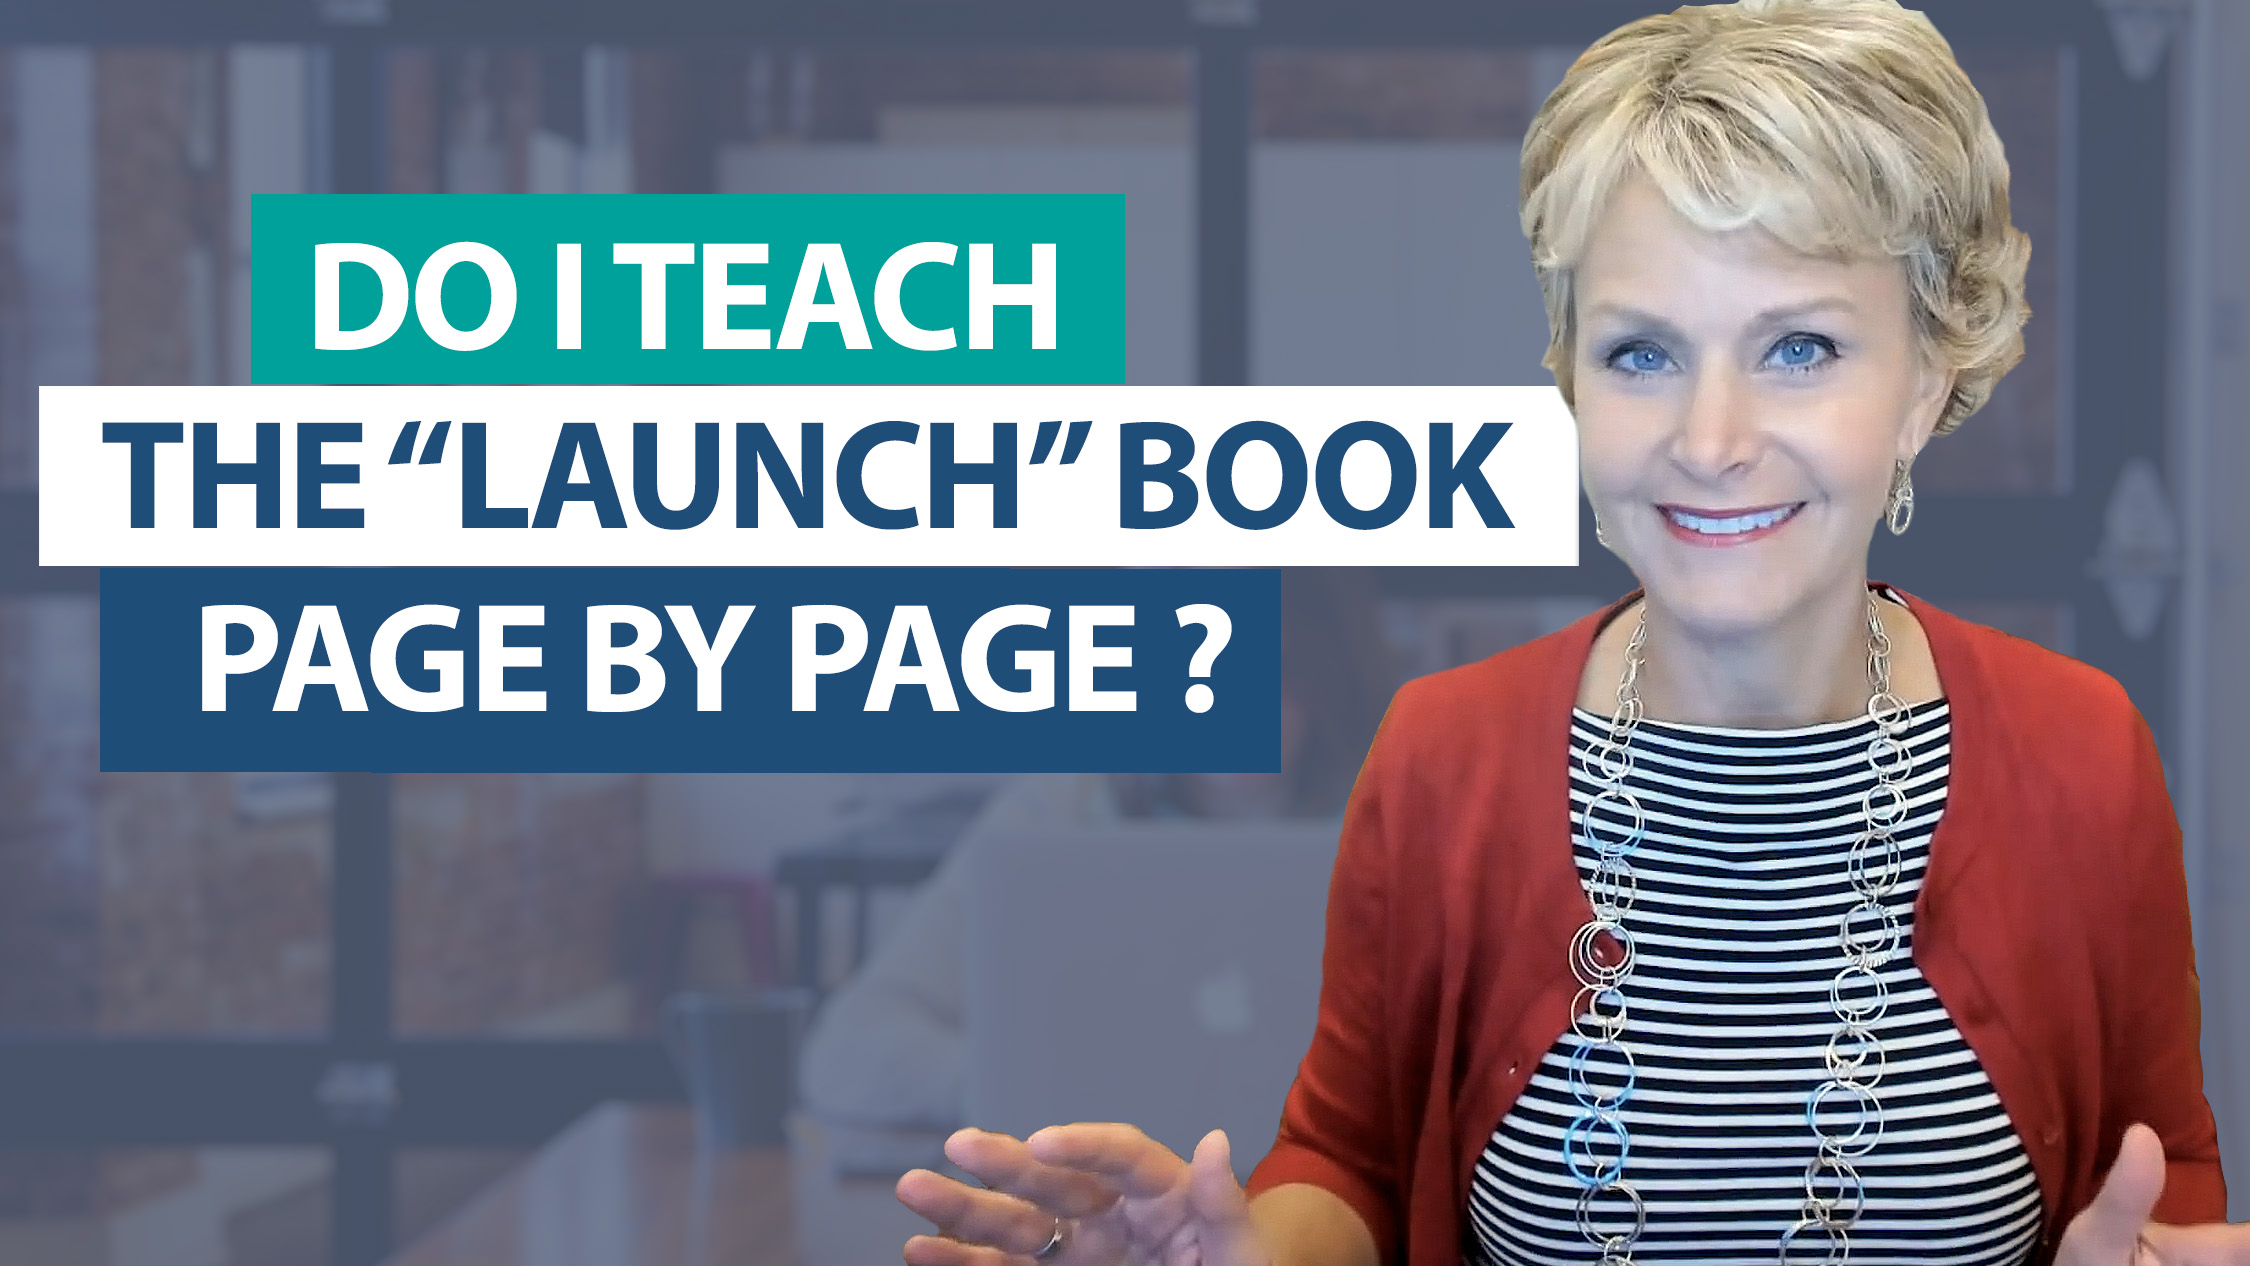 Ask Smekens: Do I teach the Launch book page by page?